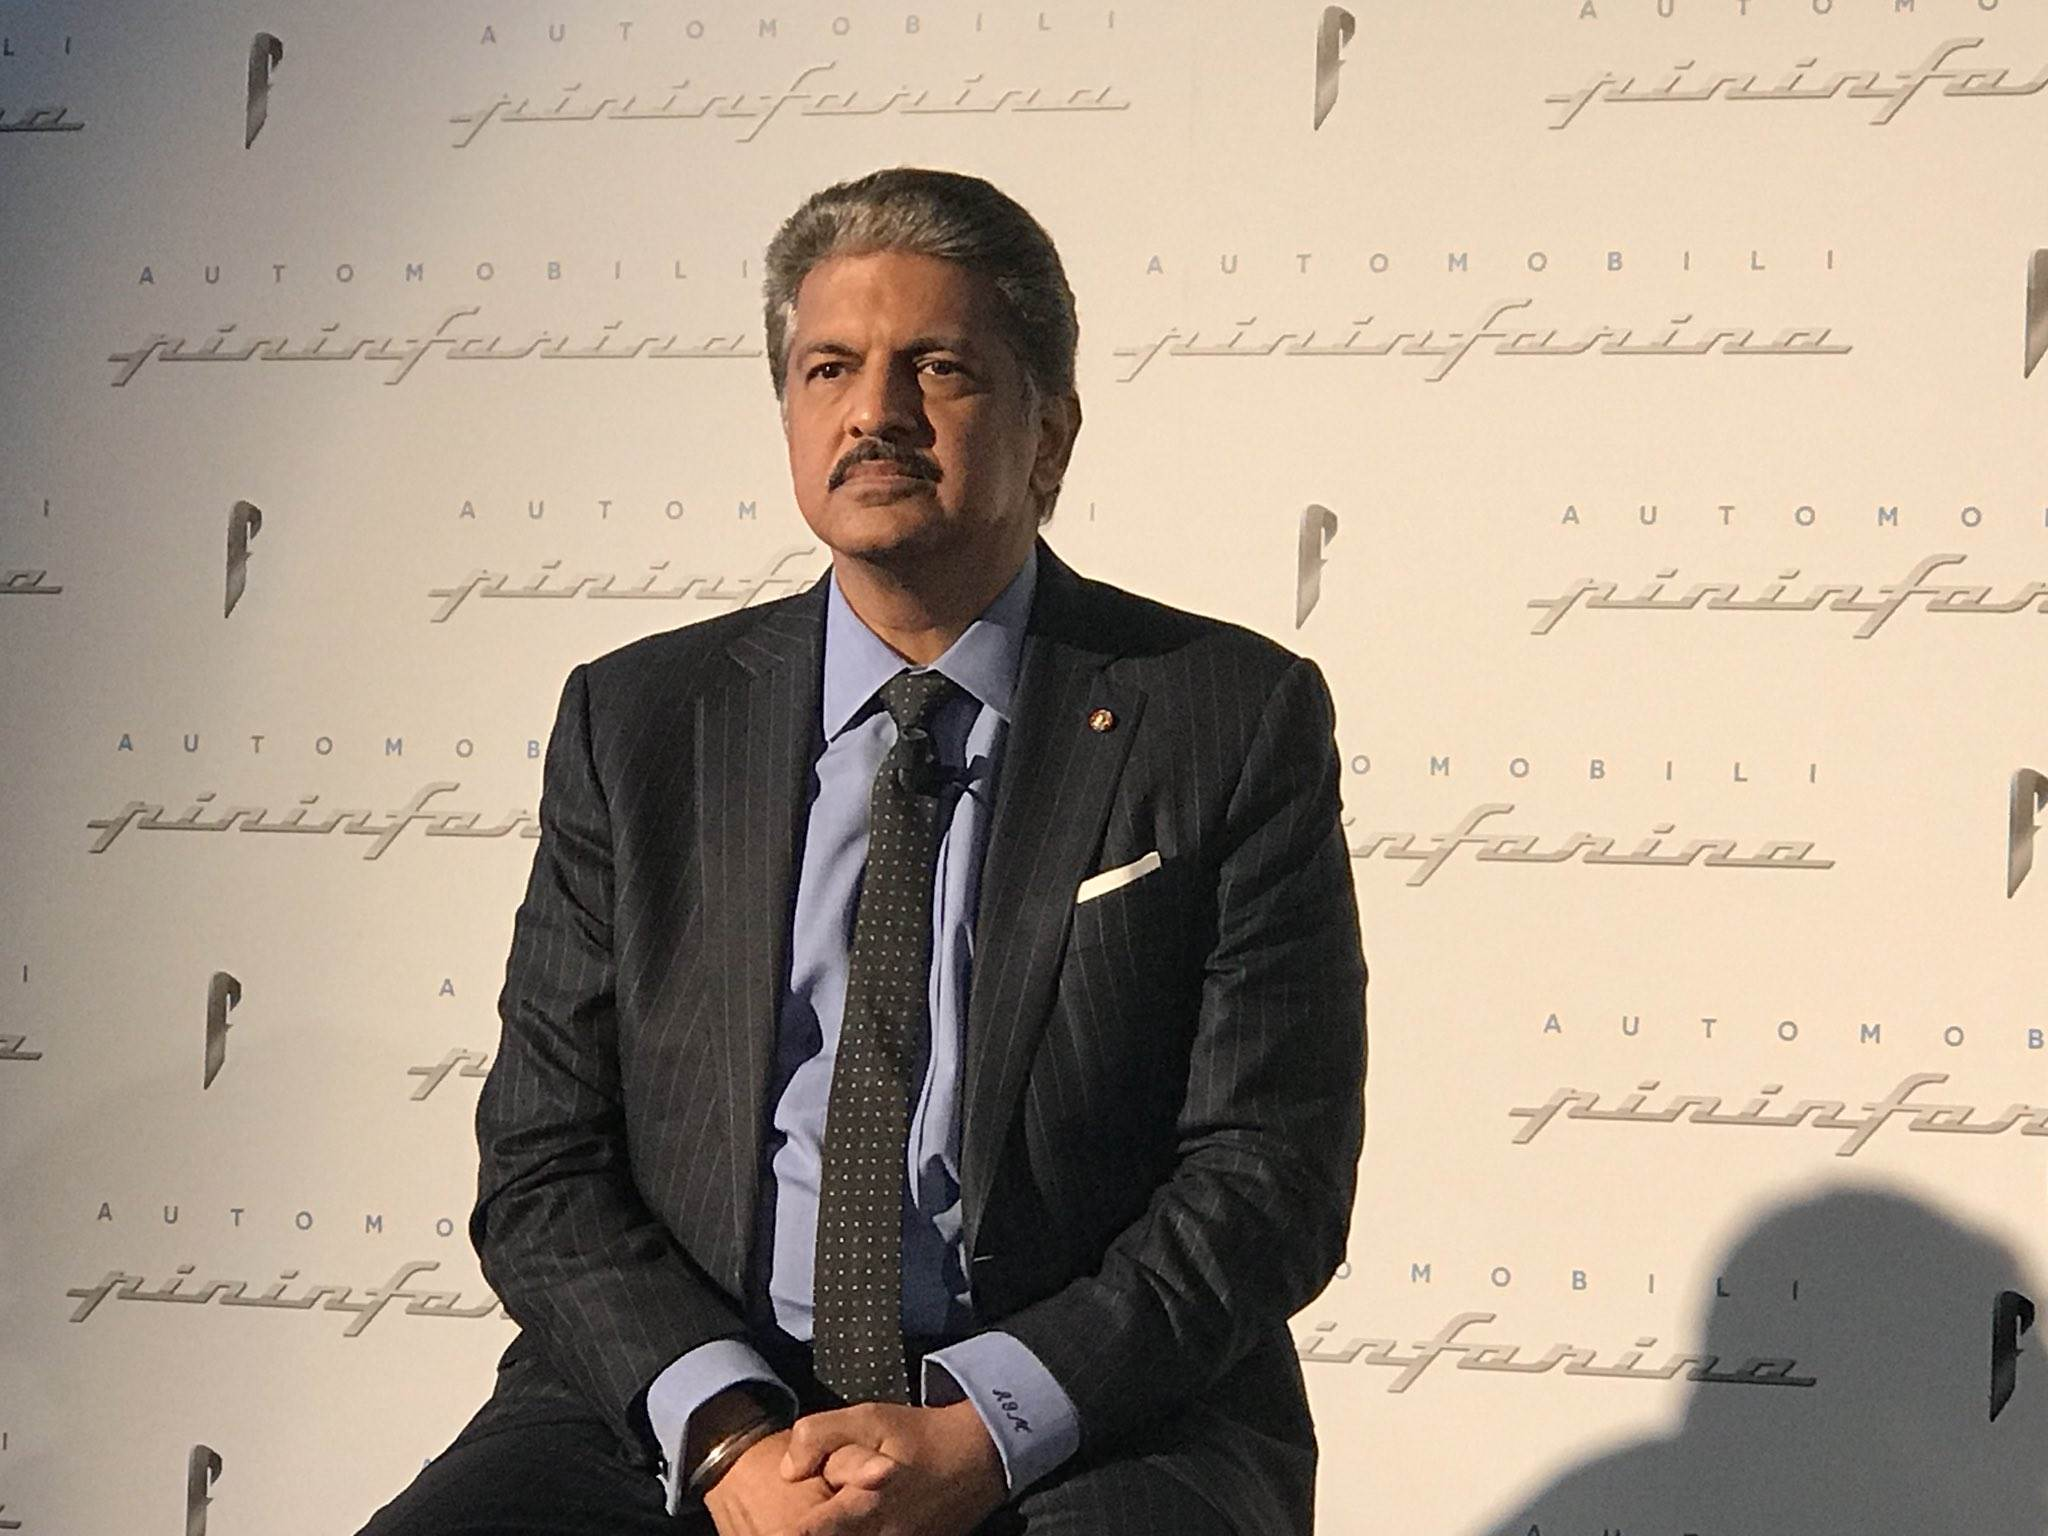 anand-mahindra-at-automobili-pininfarina-launch